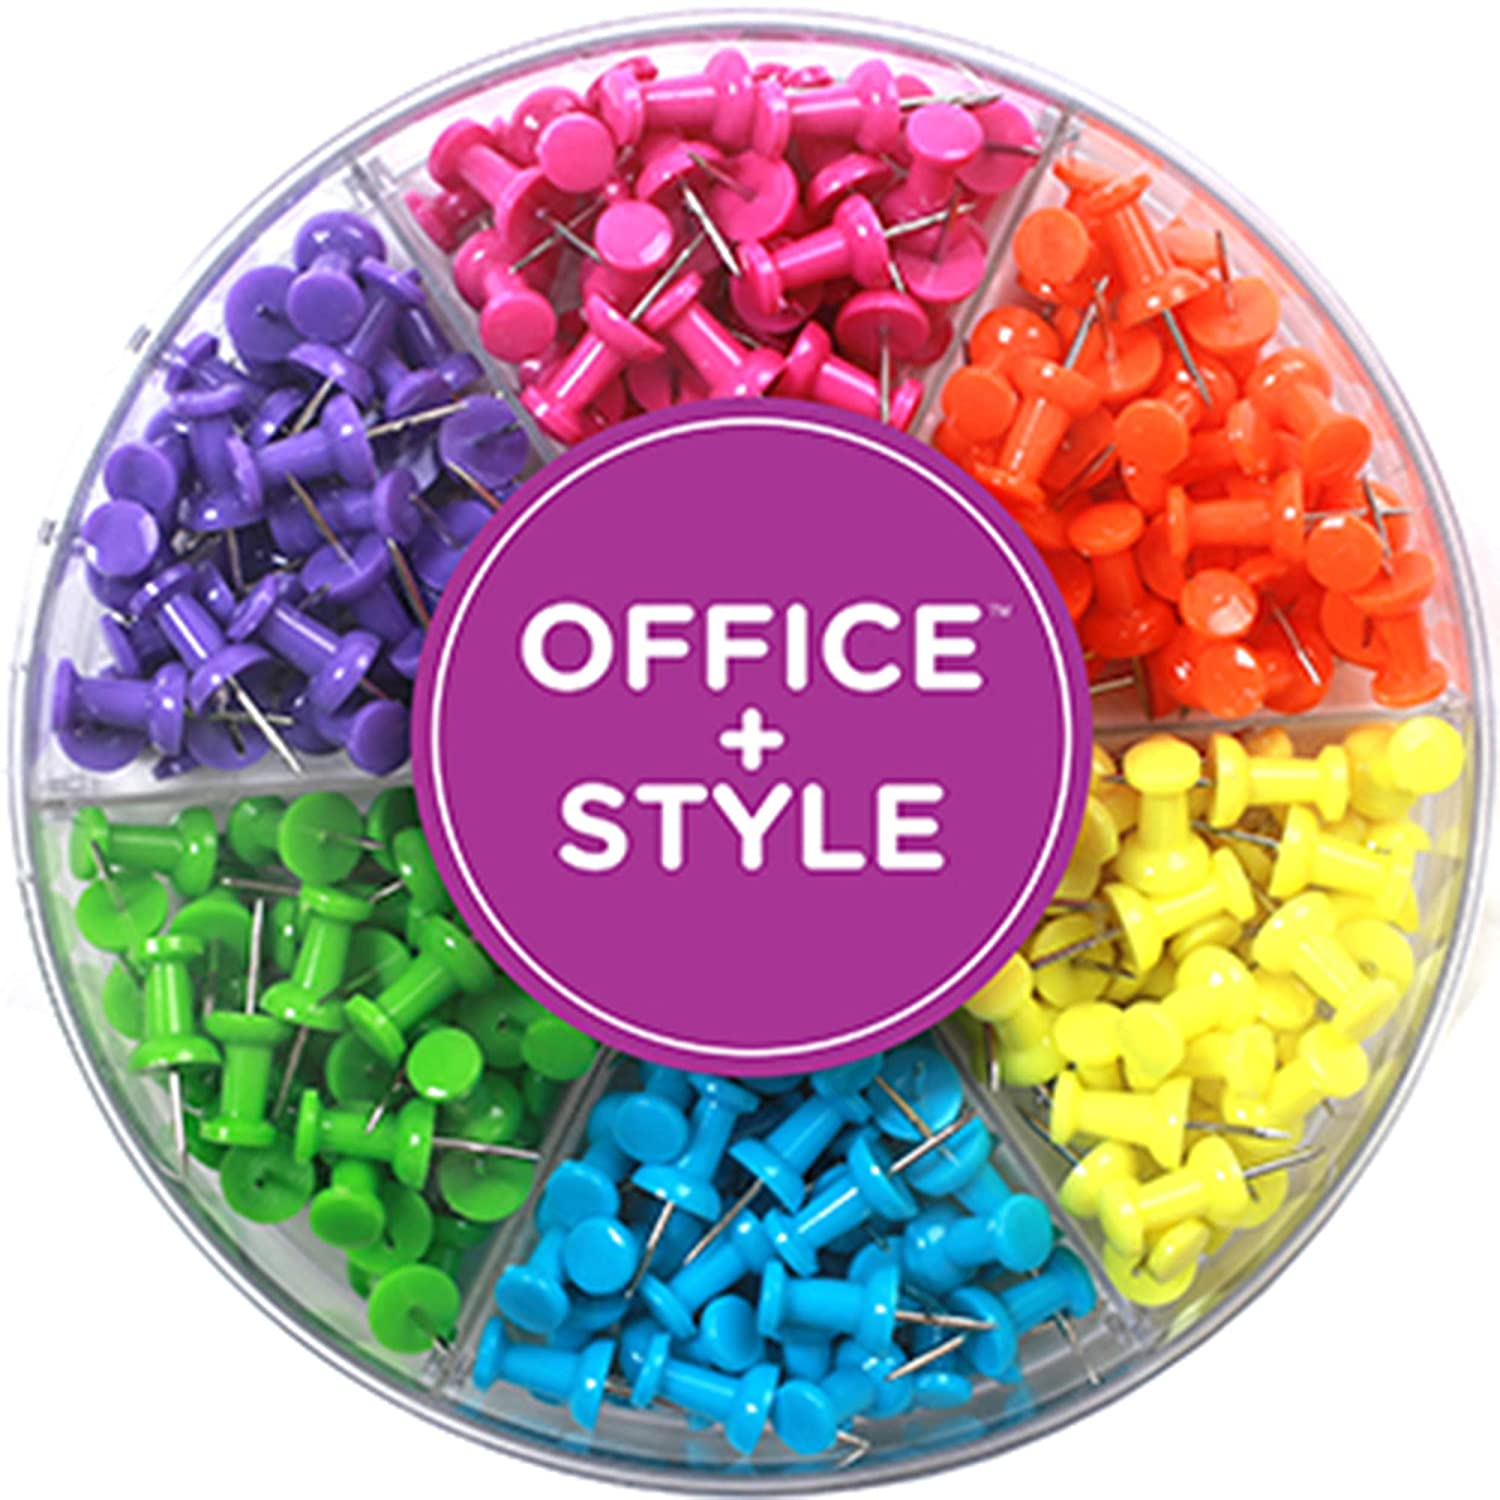 Decorative Multi-Colored Push Pins for Home /& Office 240 Pieces by Office Style Six Colors for Different Projects in Reusable Organizing Container